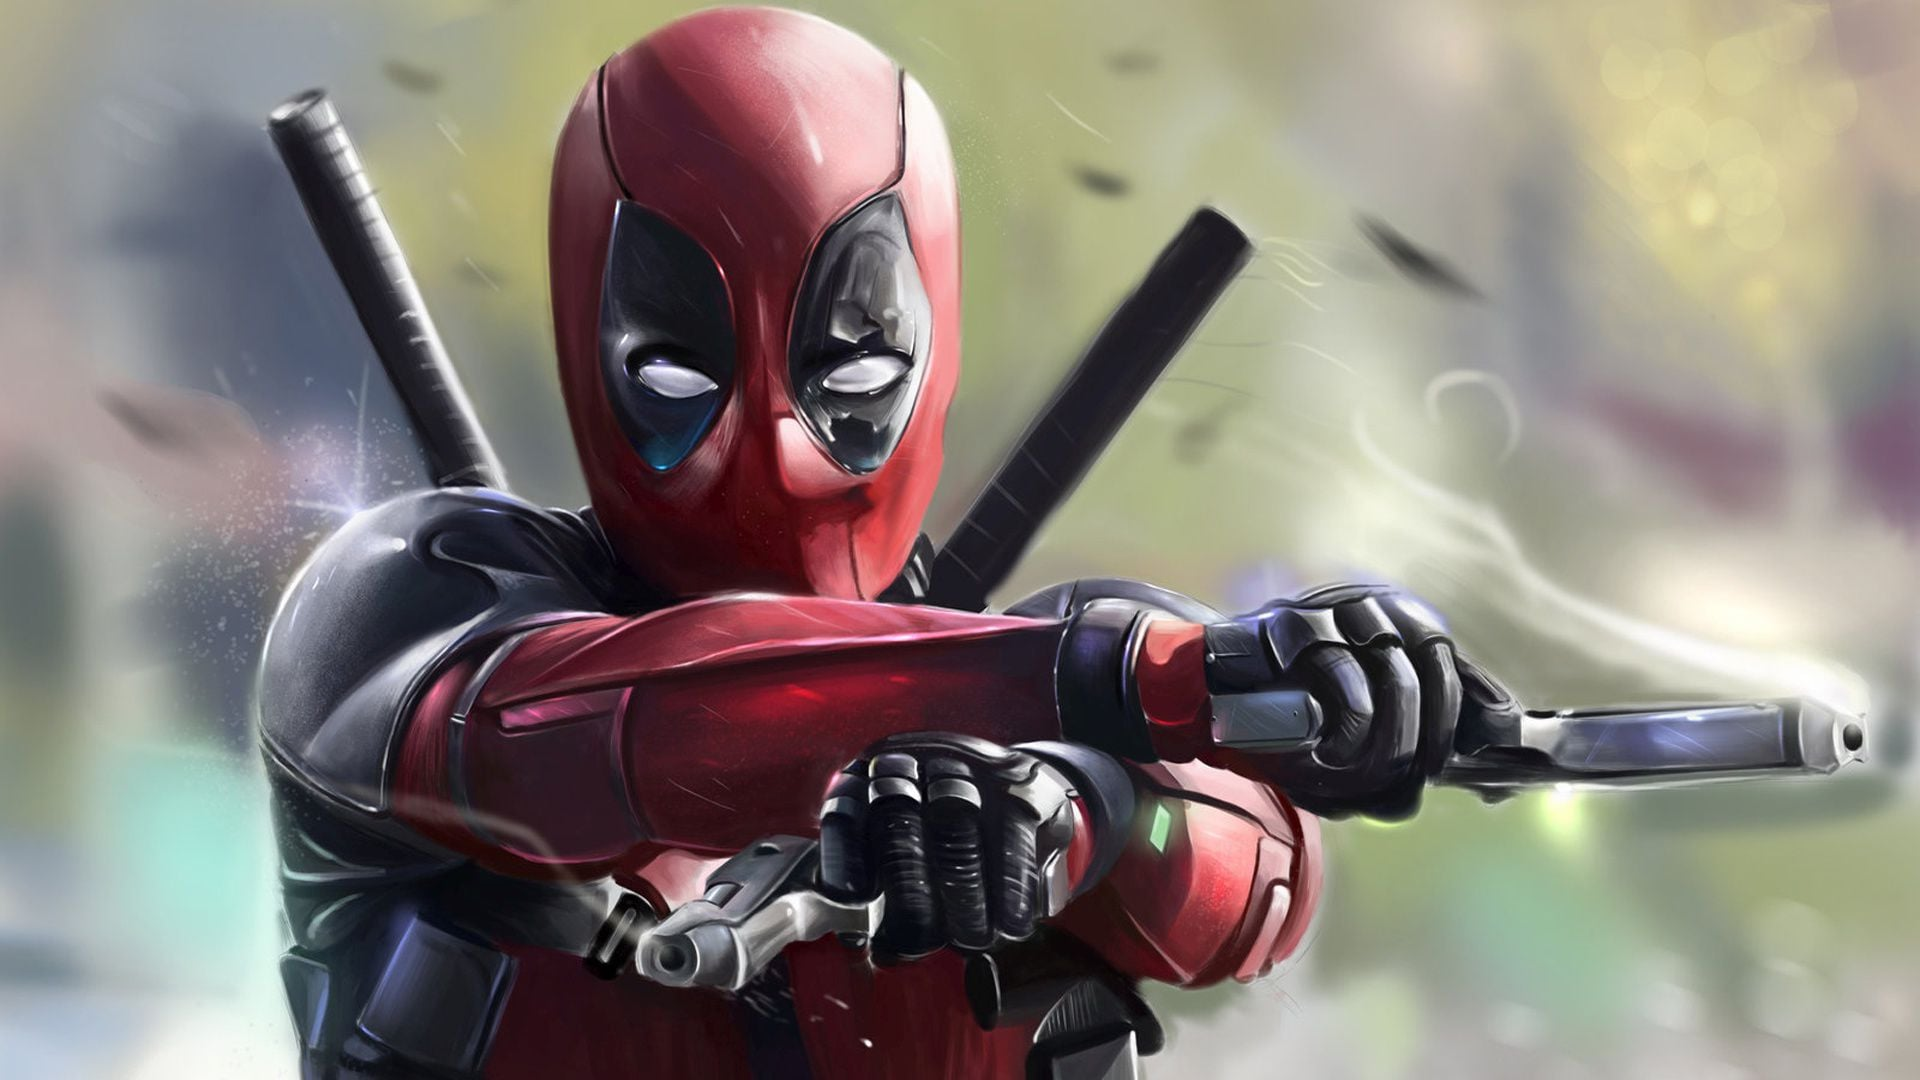 1920x1080 Deadpool Wallpapers HD Backgrounds, Images, Pics, Photos Free ...